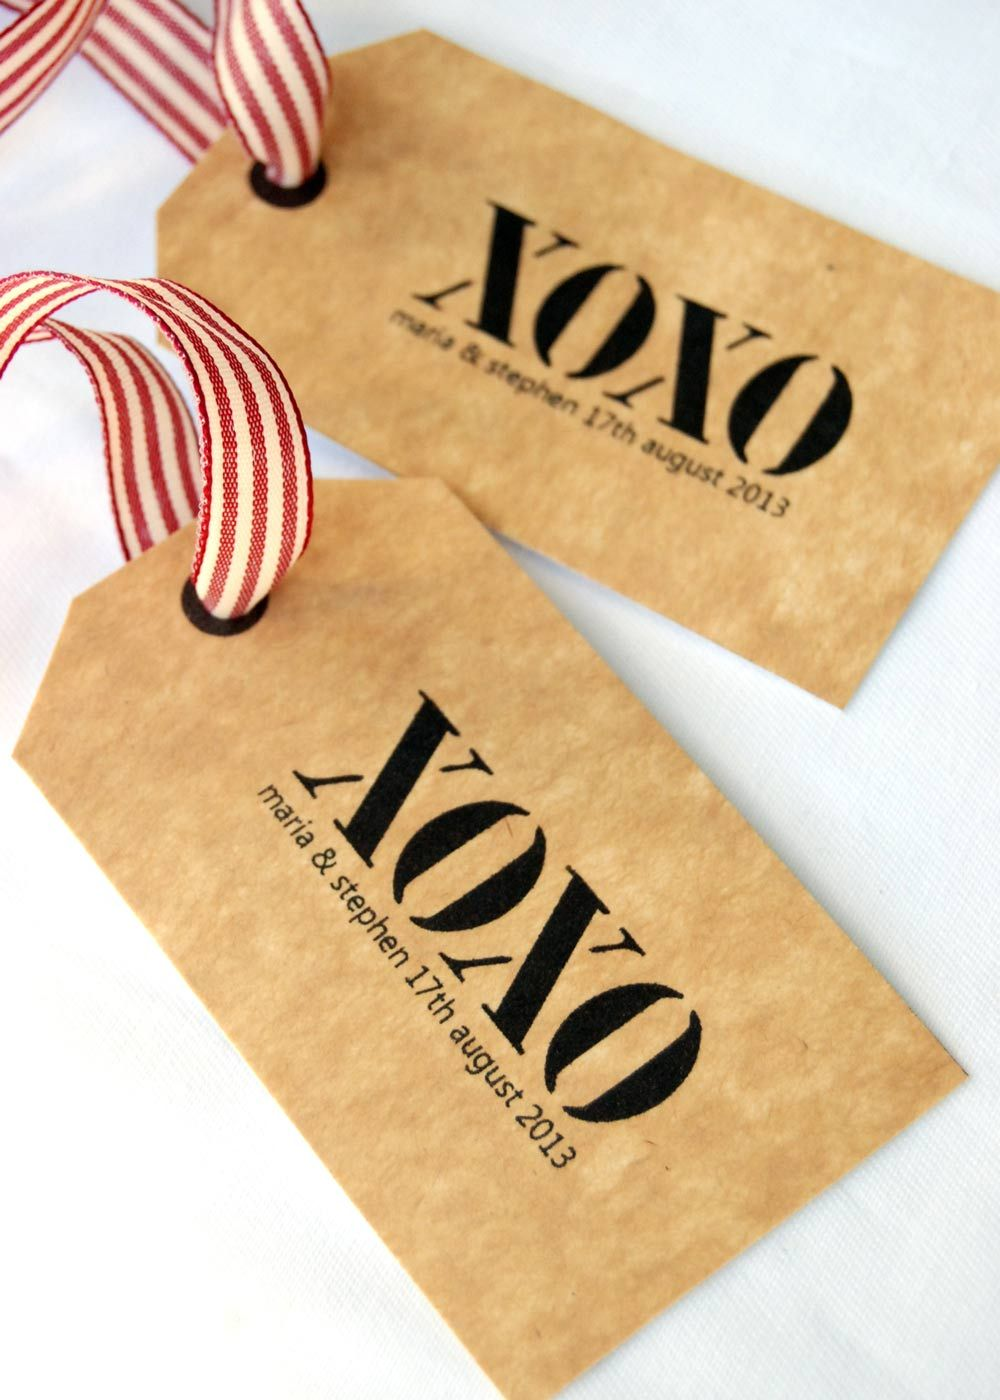 Xoxo large wedding gift tags gift wrap bags tags pinterest diy wedding small gift tags an easy do it yourself project solutioingenieria Choice Image